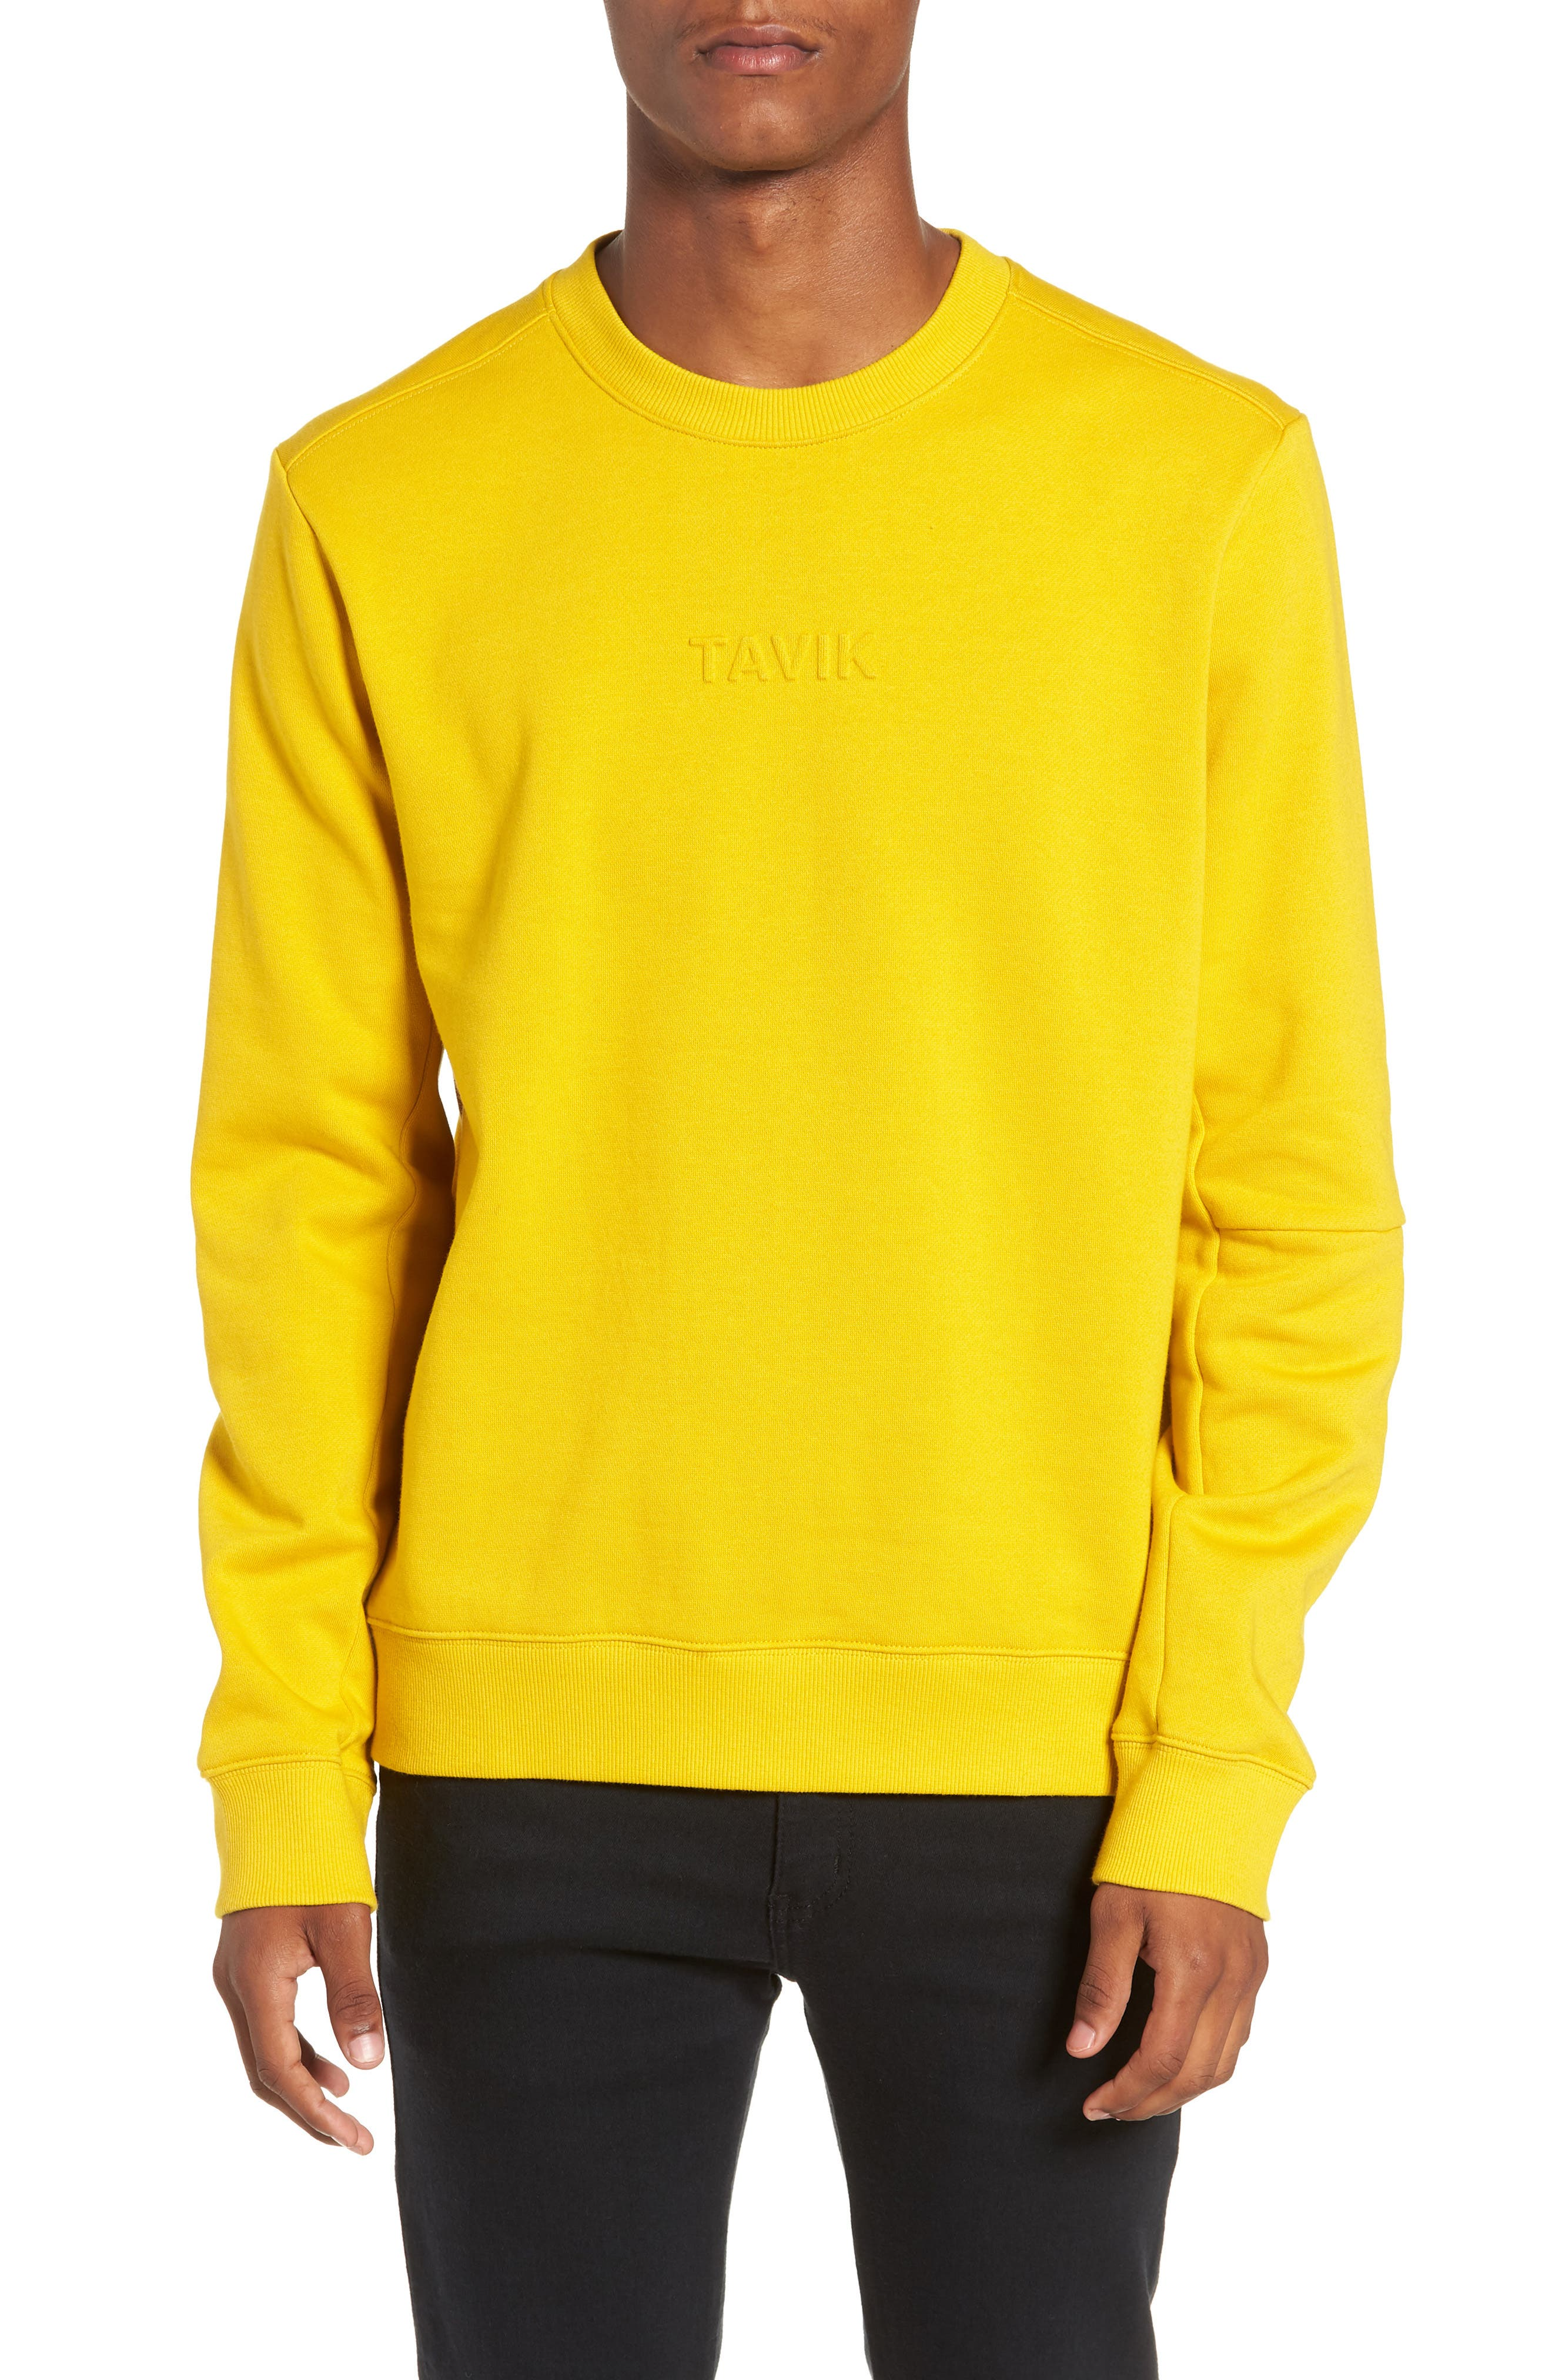 Loma Sweatshirt,                         Main,                         color, MUSTARD YELLOW